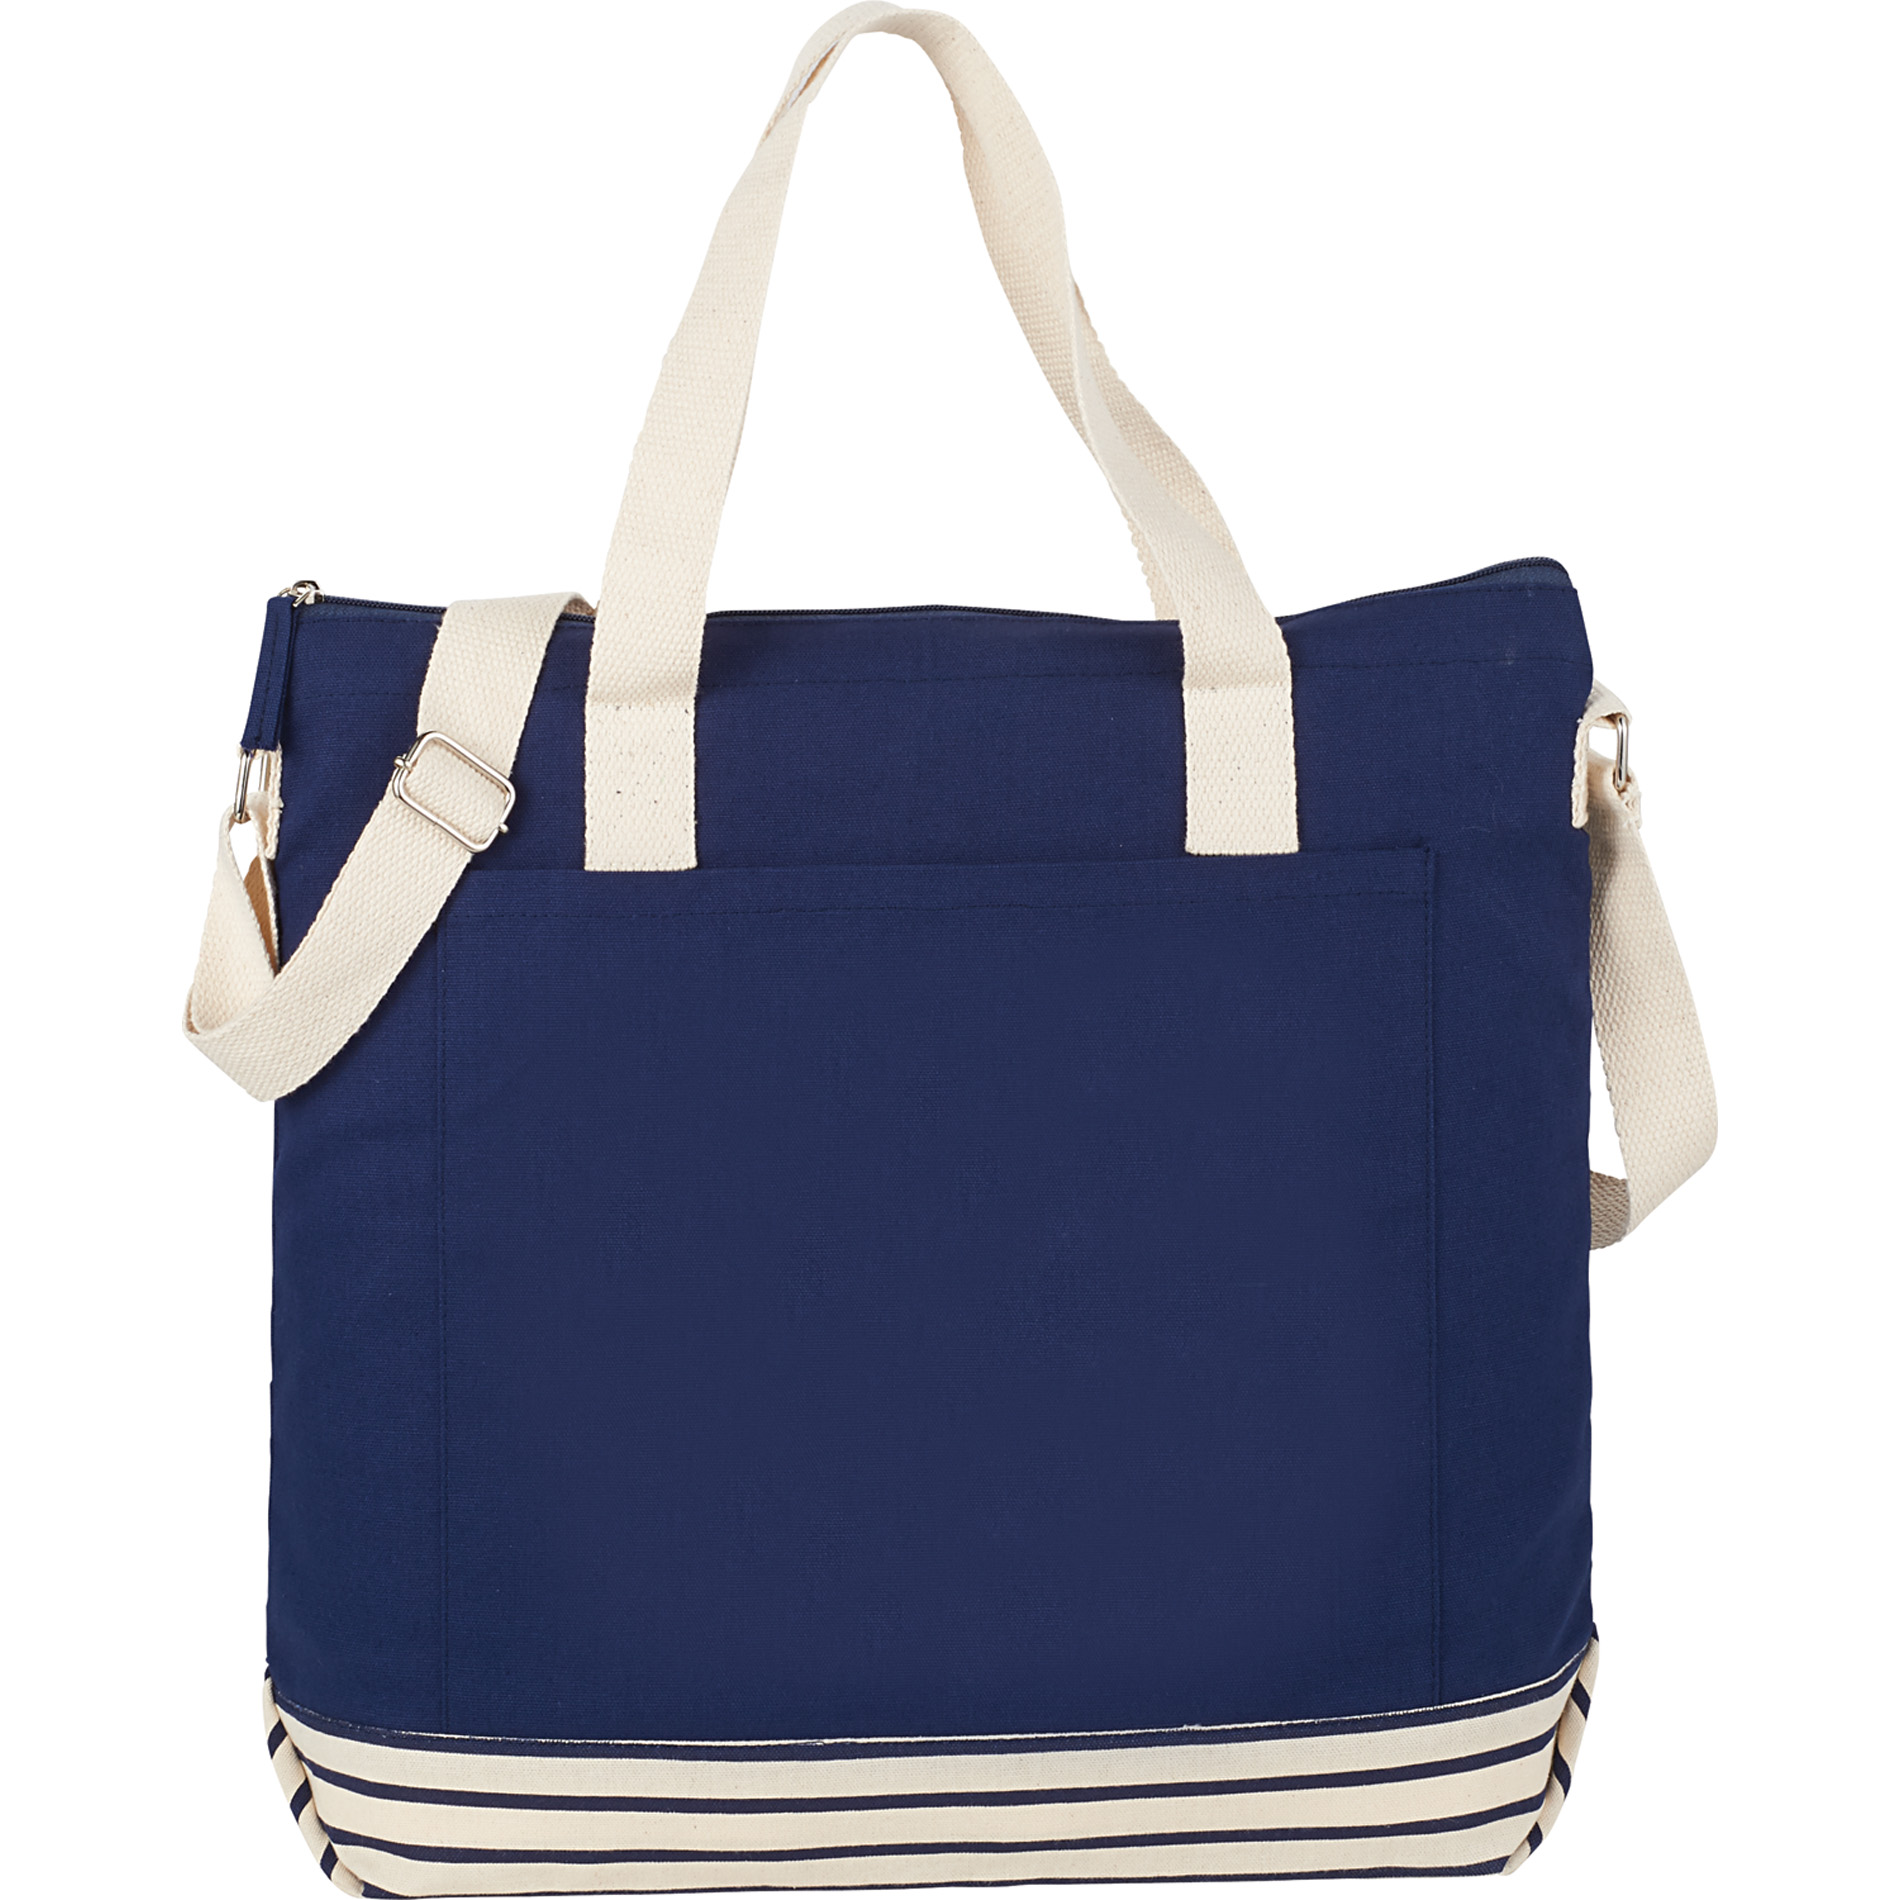 LEEDS 7900-86 - 10 oz. Cotton Canvas Striped Tall Beach Tote